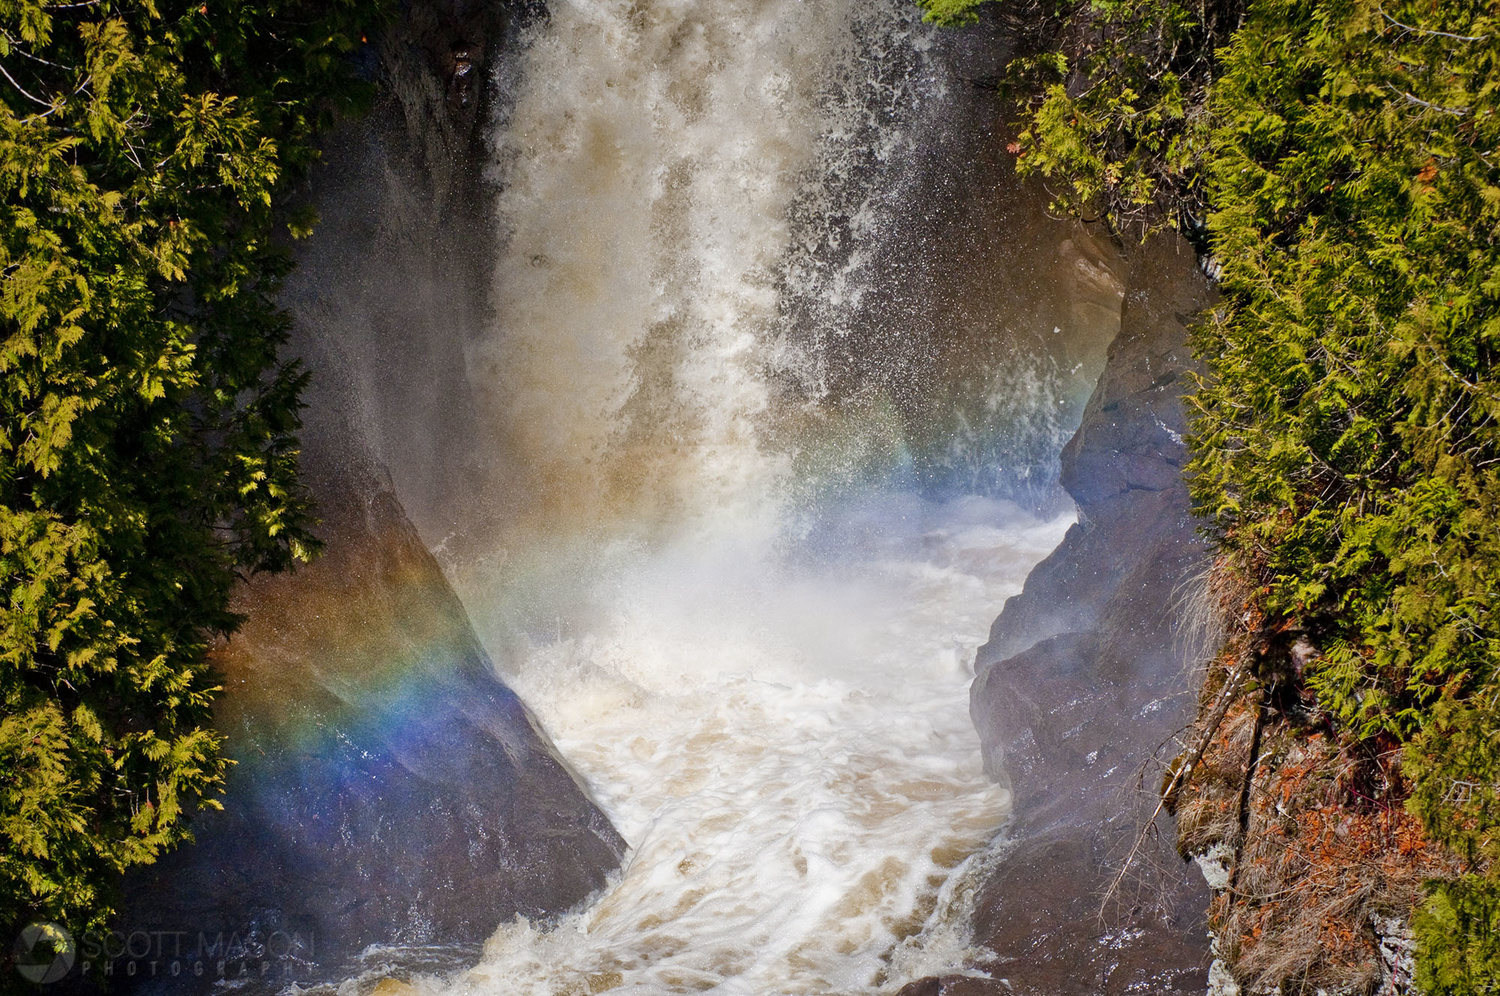 A rainbow in front of a waterfall